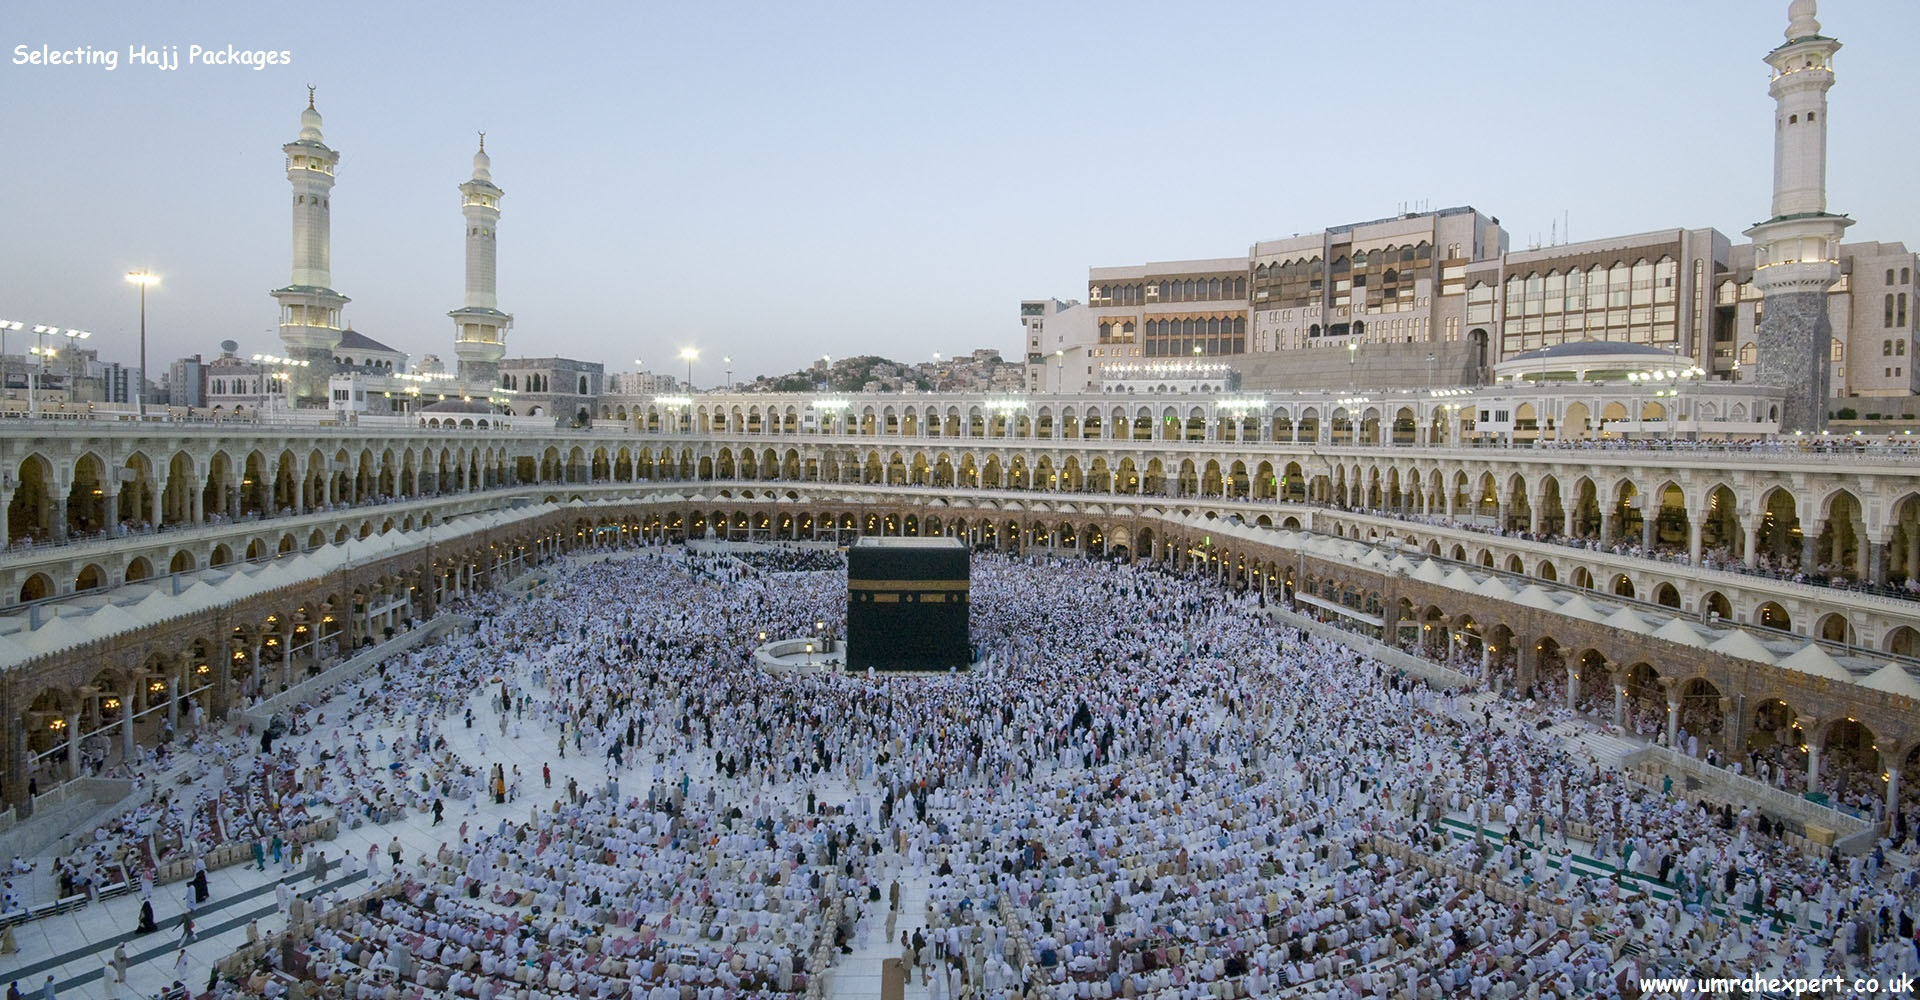 Selecting Hajj Packages